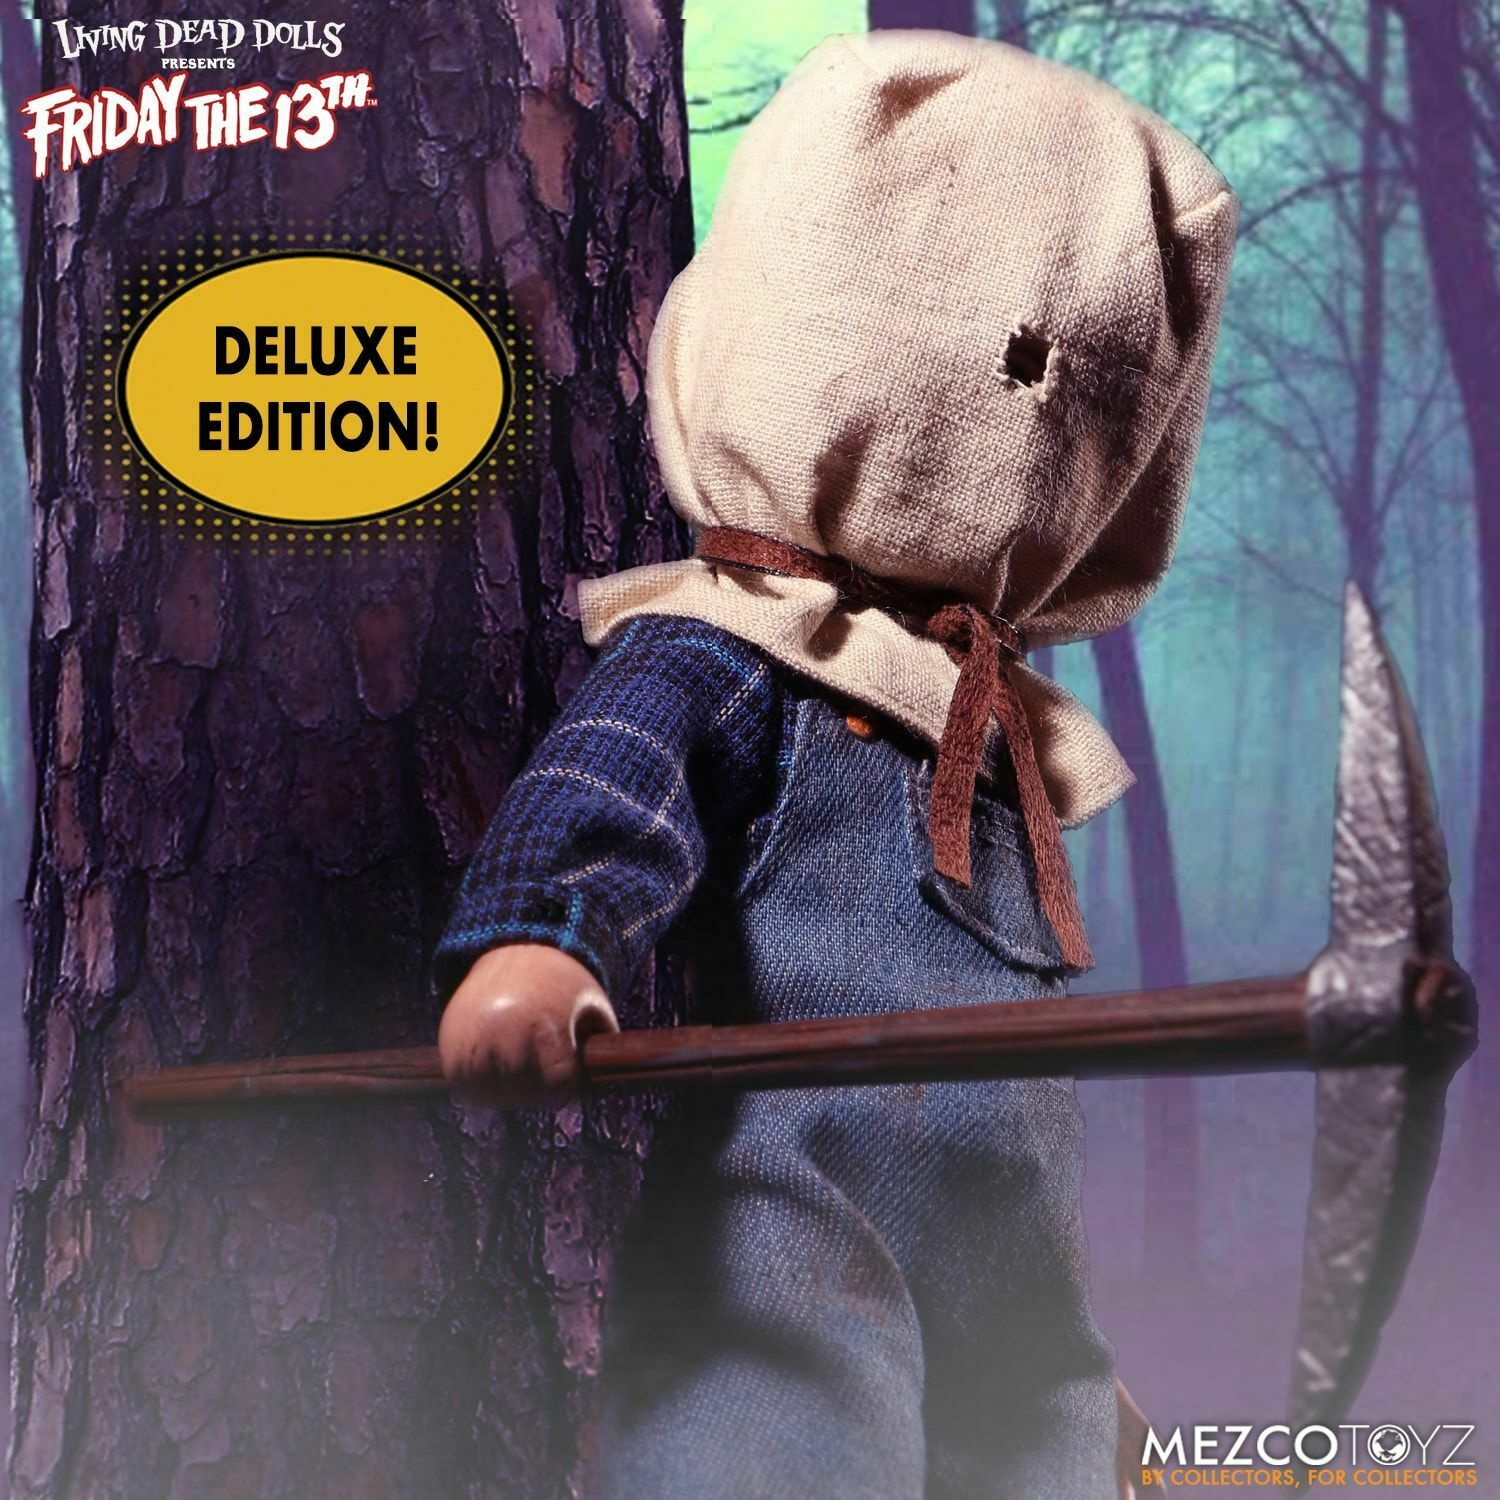 Living Dead Dolls Deluxe Edition Friday The 13th Part II  Jason Voorhees